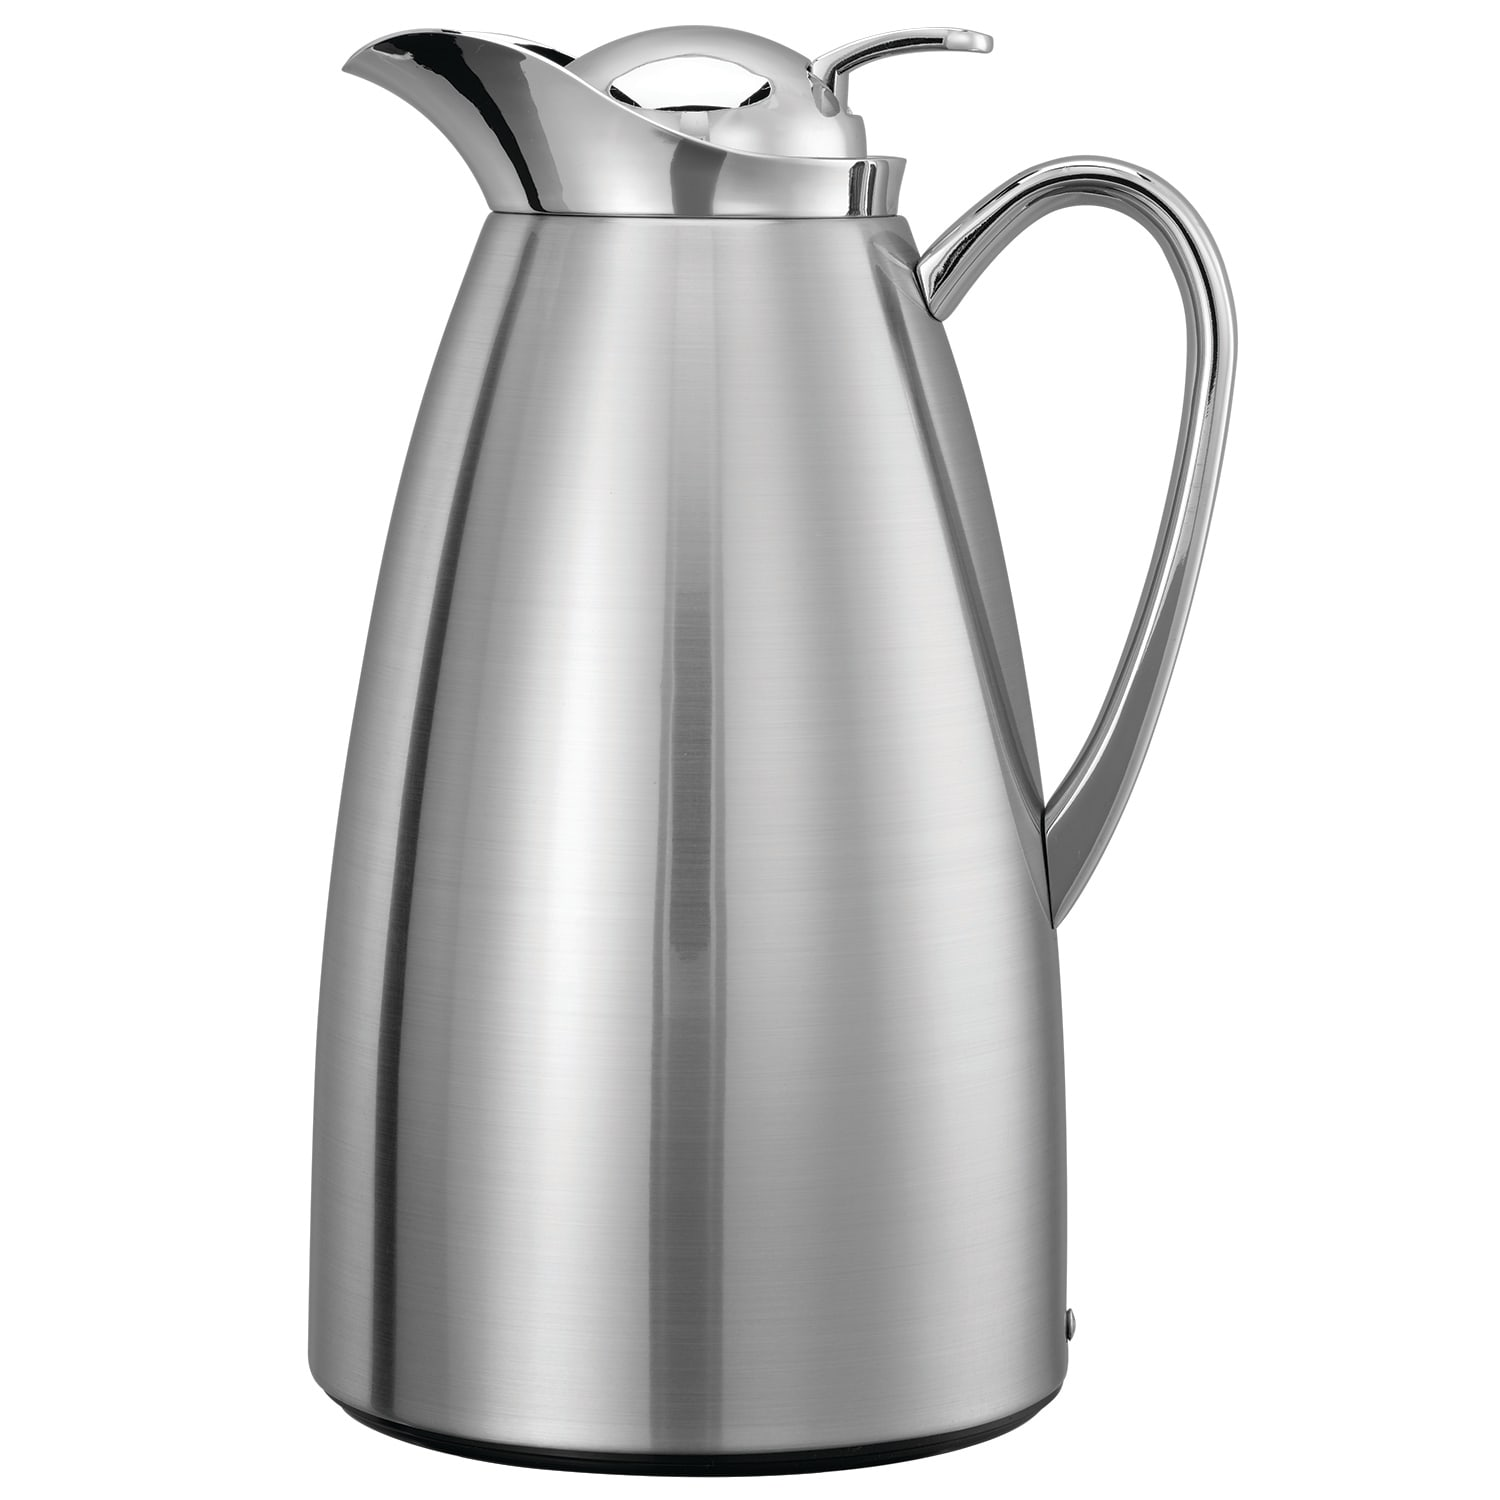 Service Ideas CJZS1BS 1-liter Coffee Server w/ Stainless Interior, Brushed Stainless